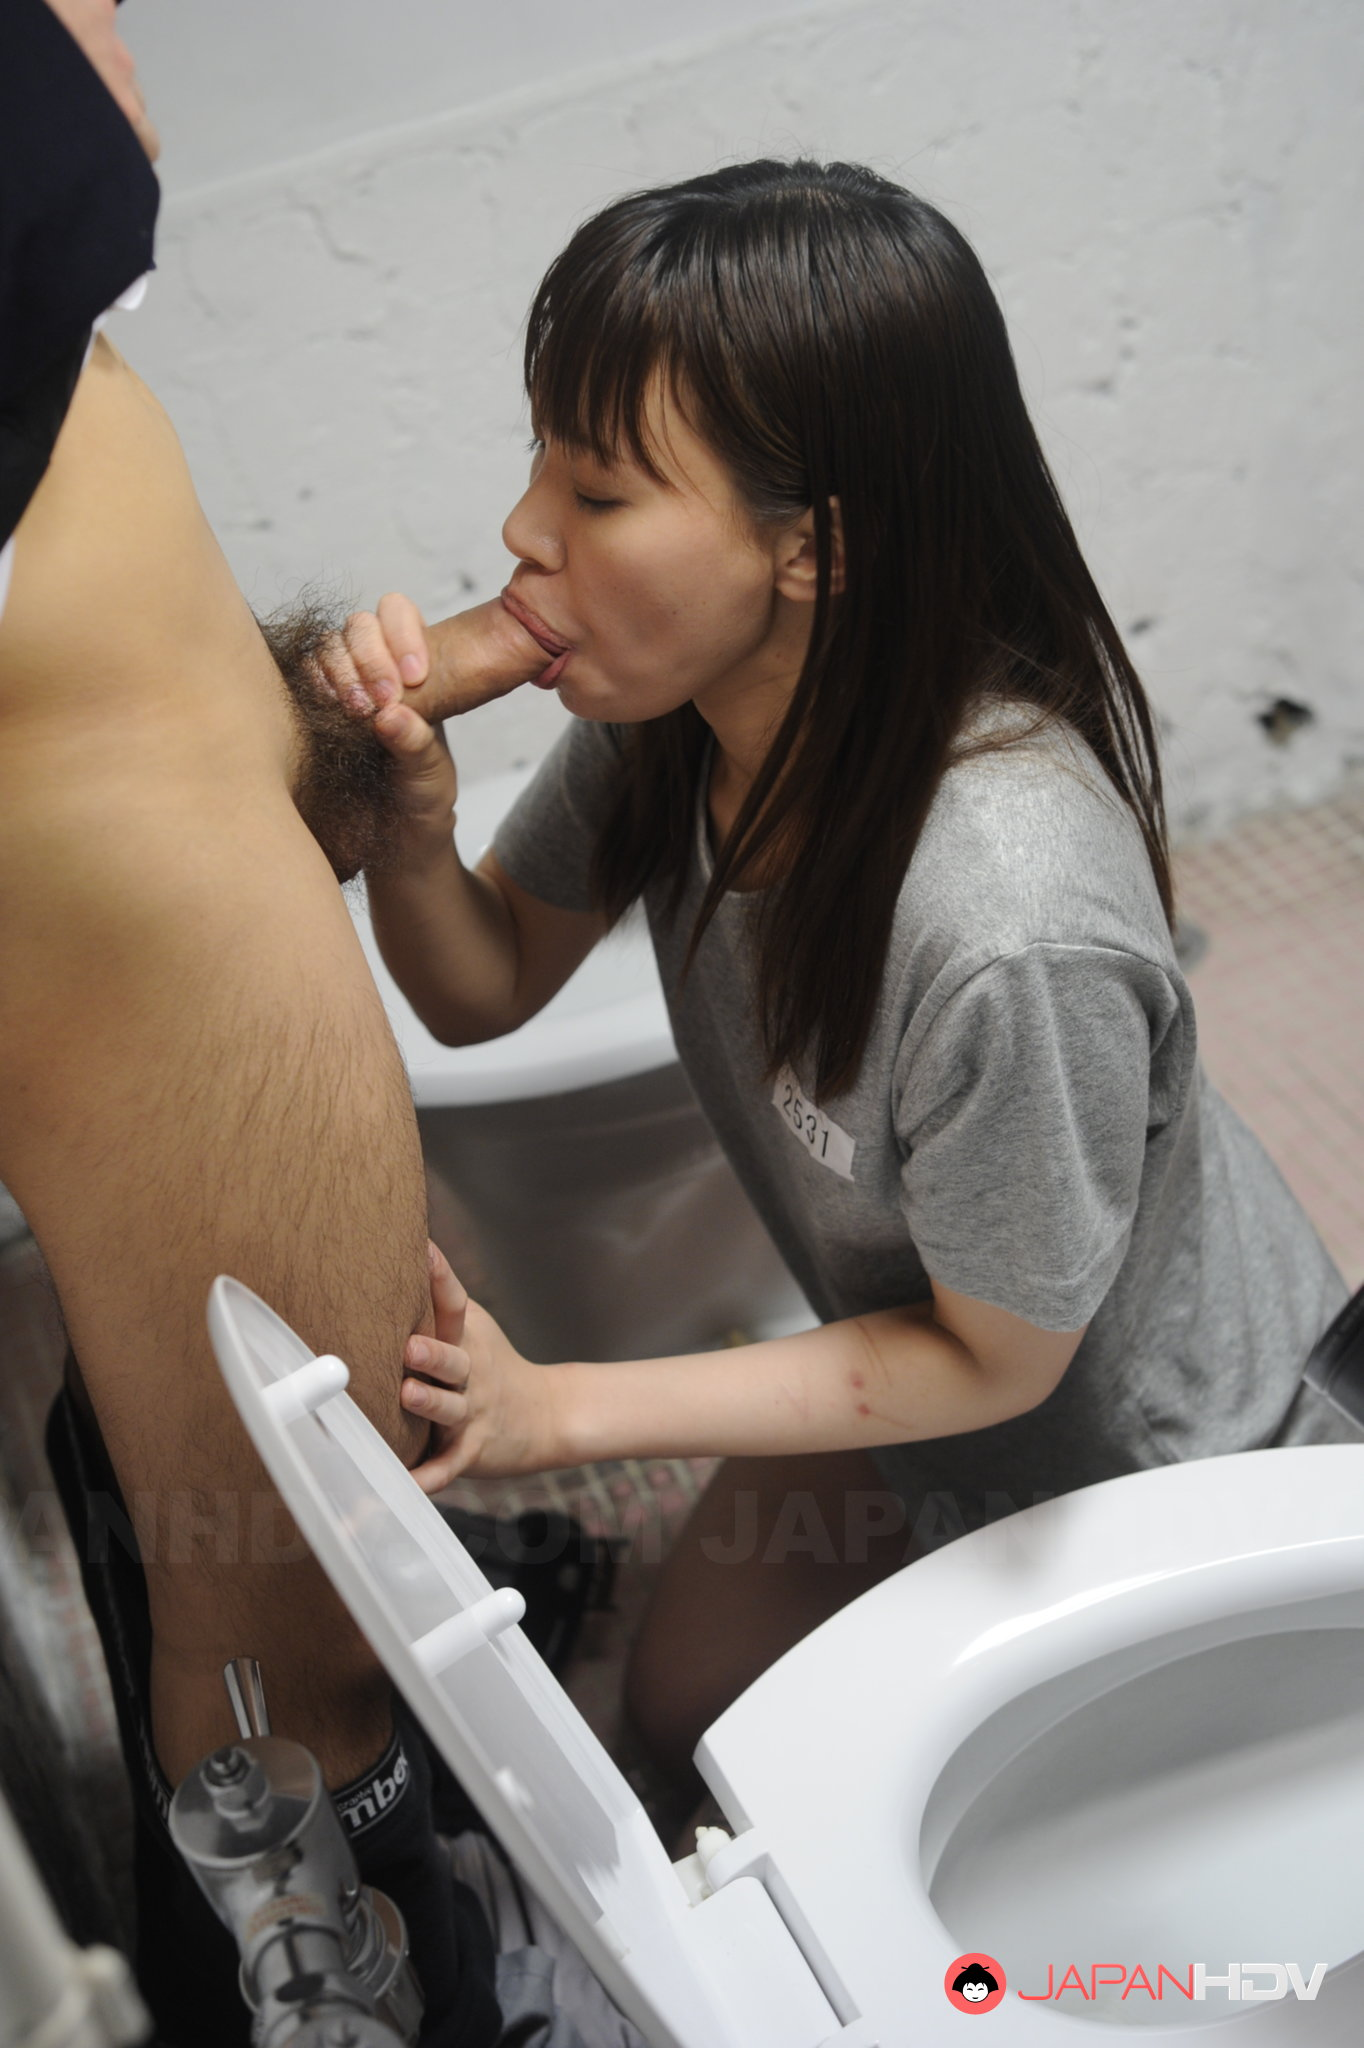 Horny Asian darling gobbling a big flesh pole adult gallery Japan HDV